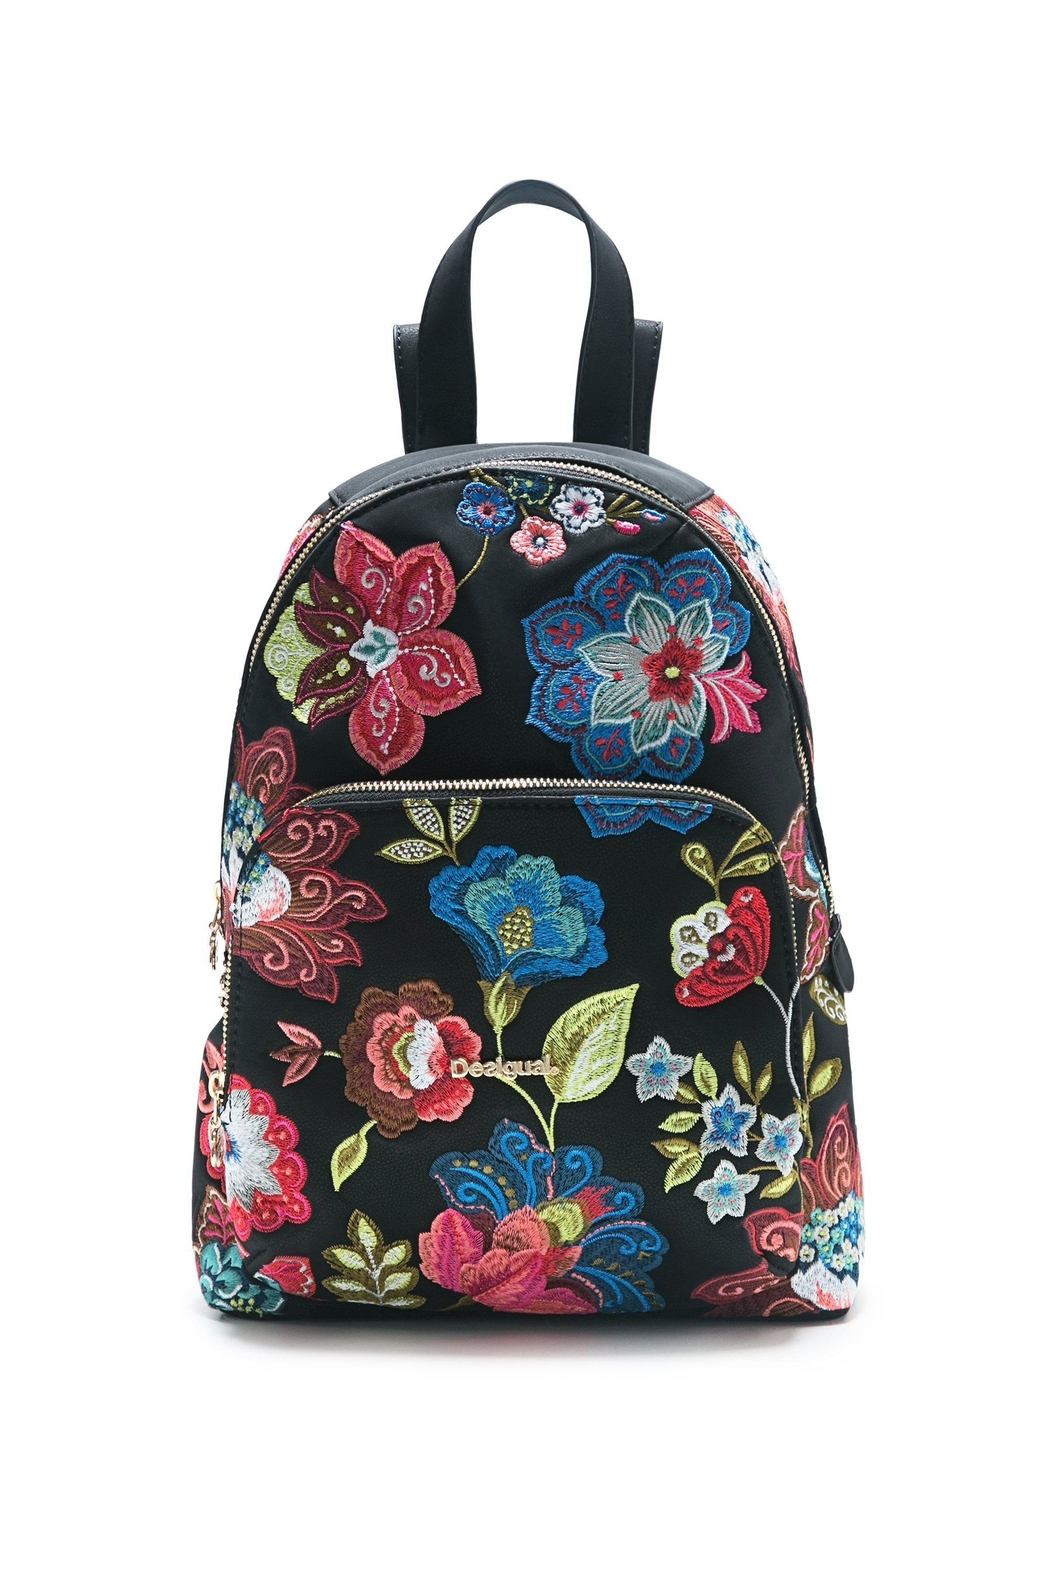 DESIGUAL Black Floral Backpack from Monterrey by Baggis Accesorios ... a8b2c67e34b